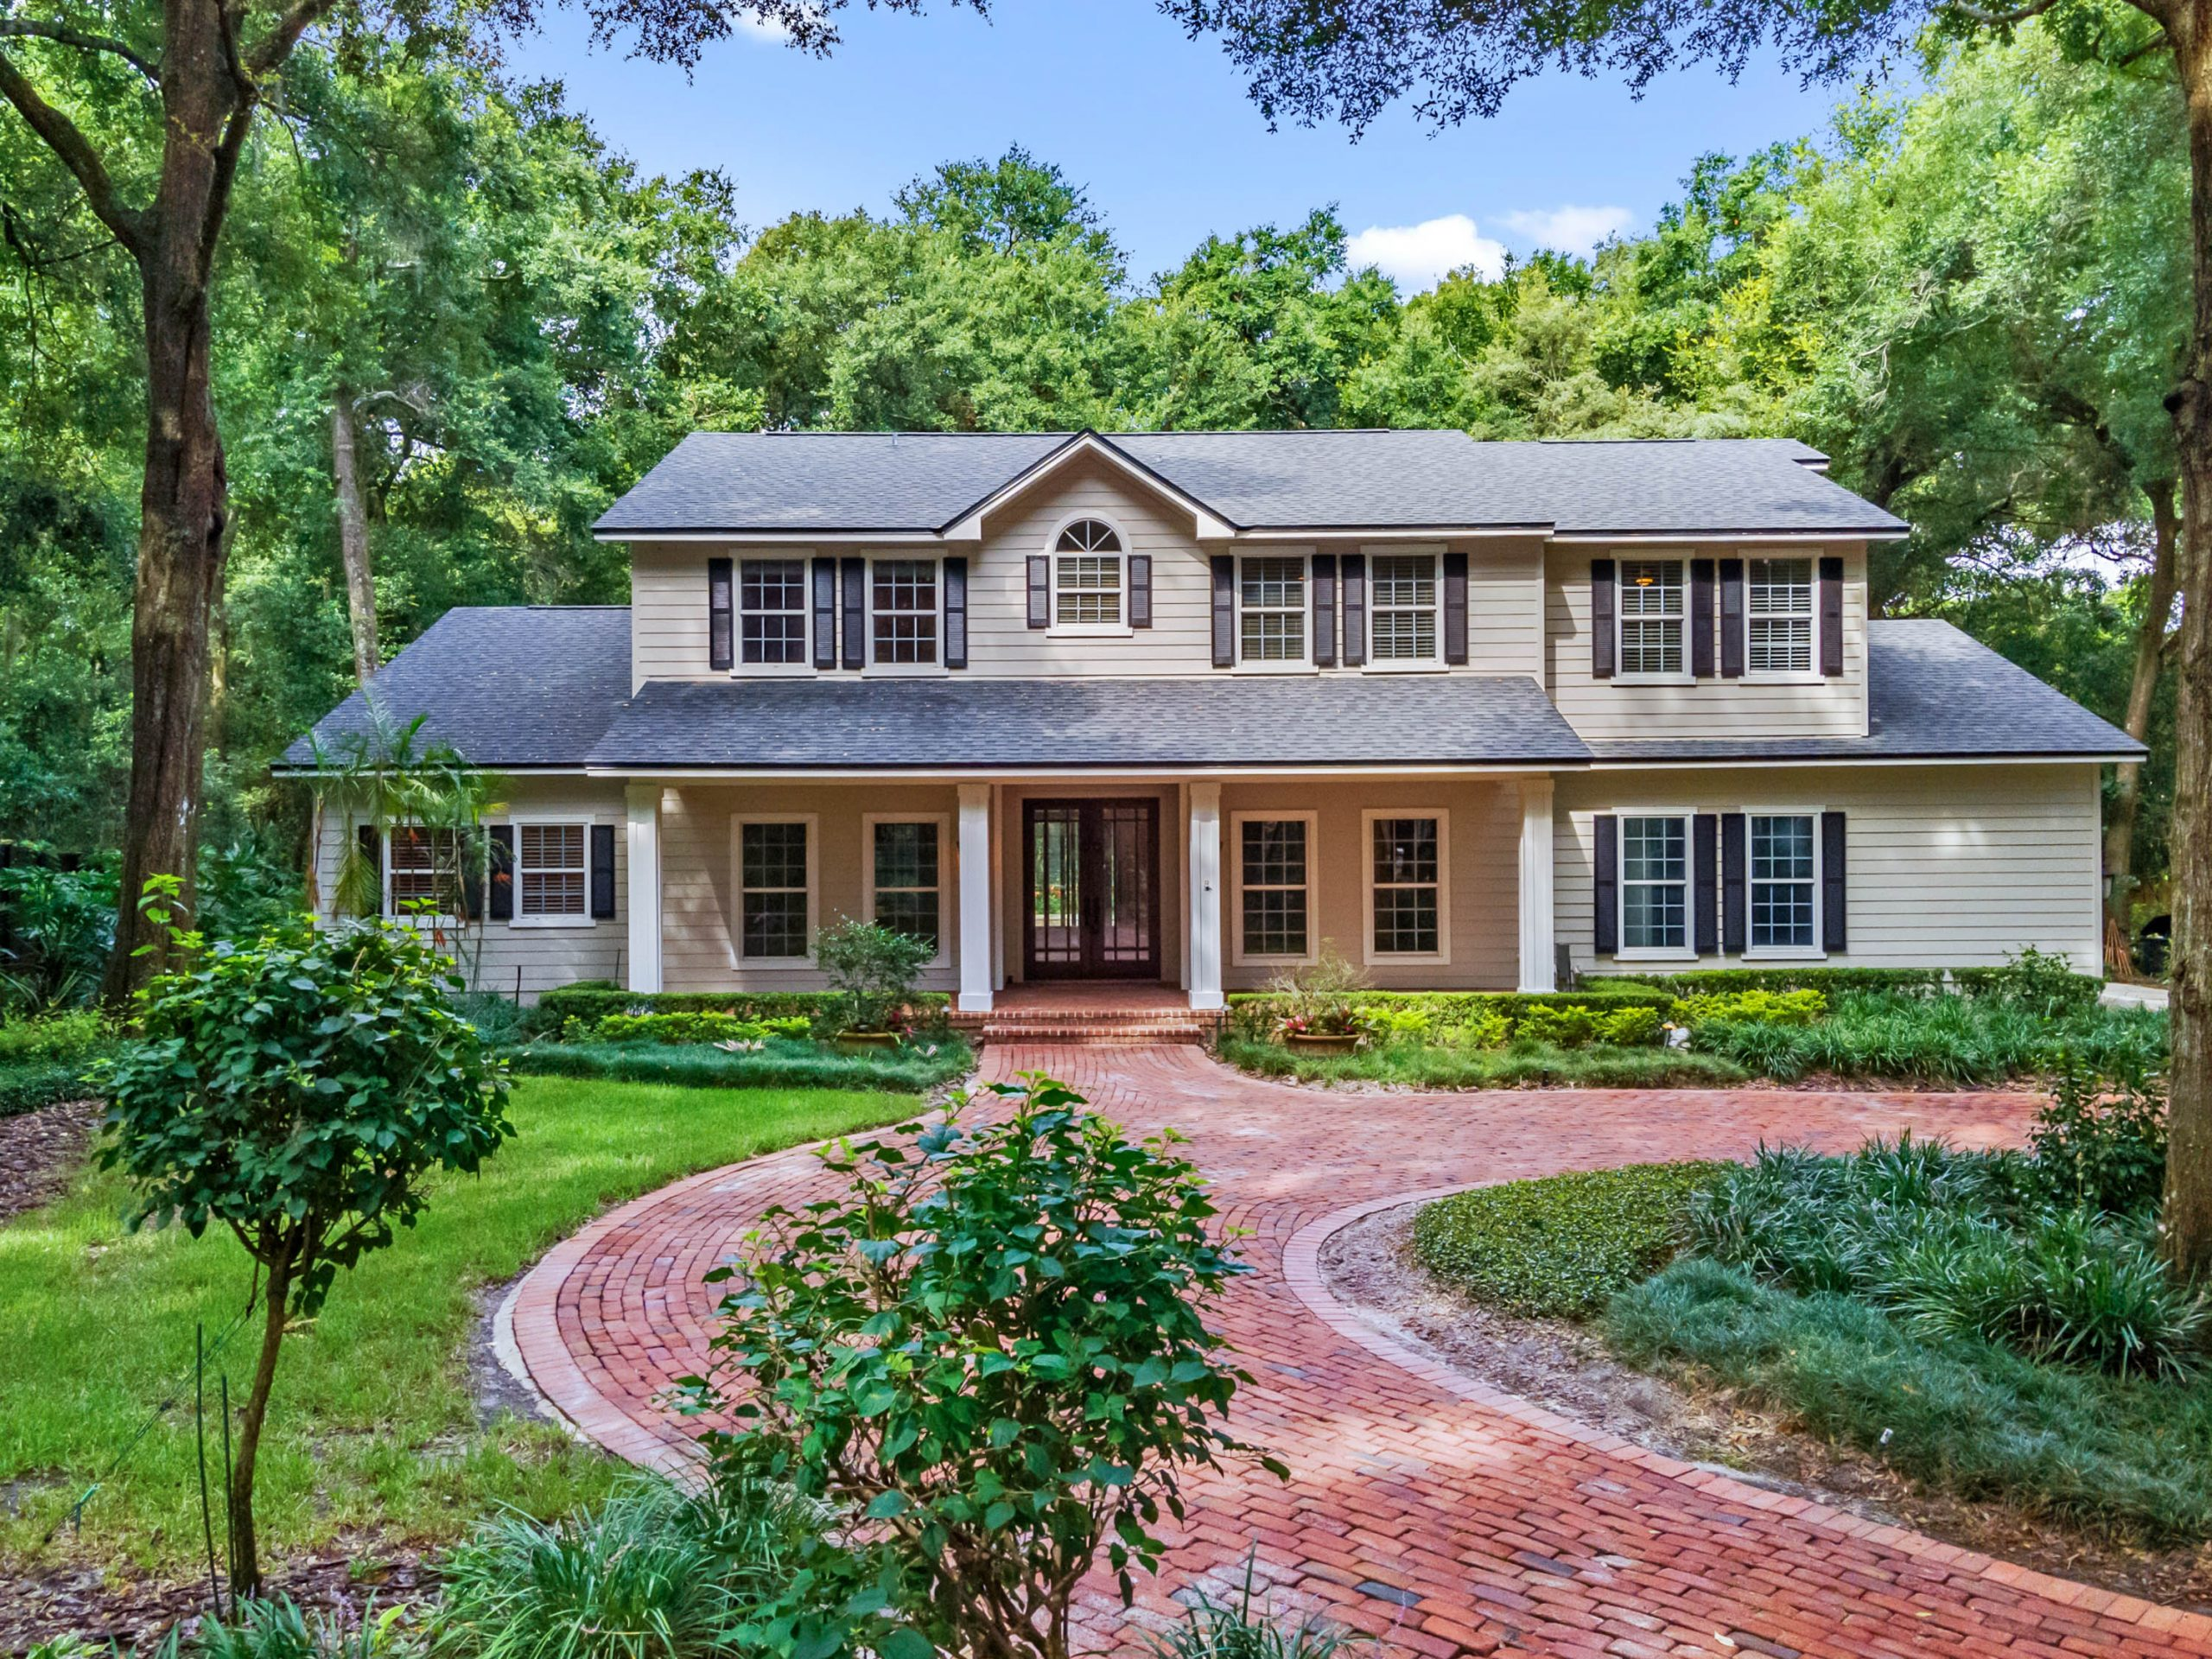 One of a Kind Windermere Estate with 5 Bedrooms & Over 1 Acre Of Land